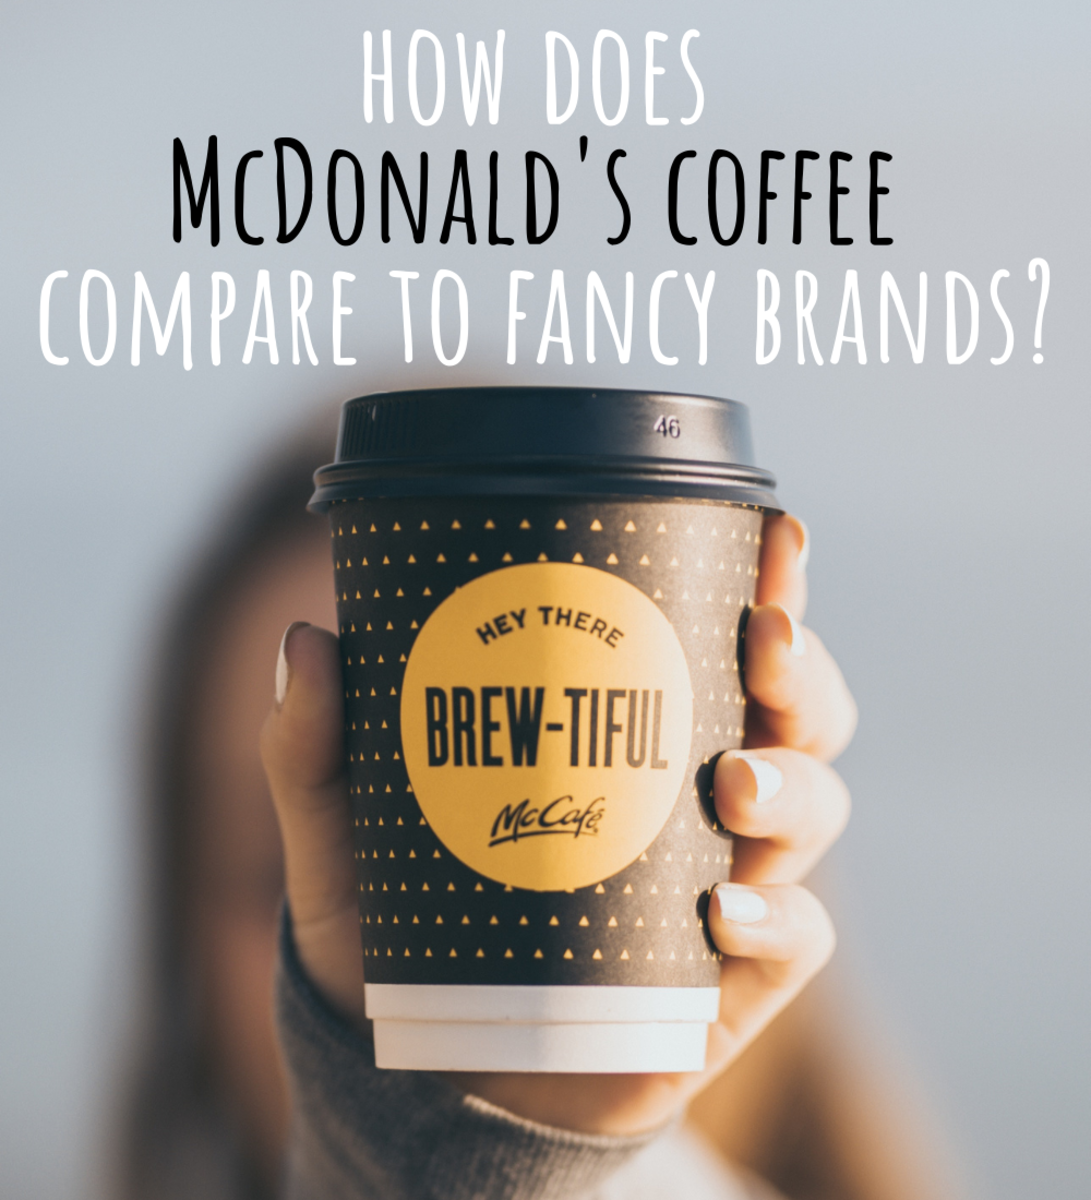 Why Is McDonald's Drip Coffee So Good?